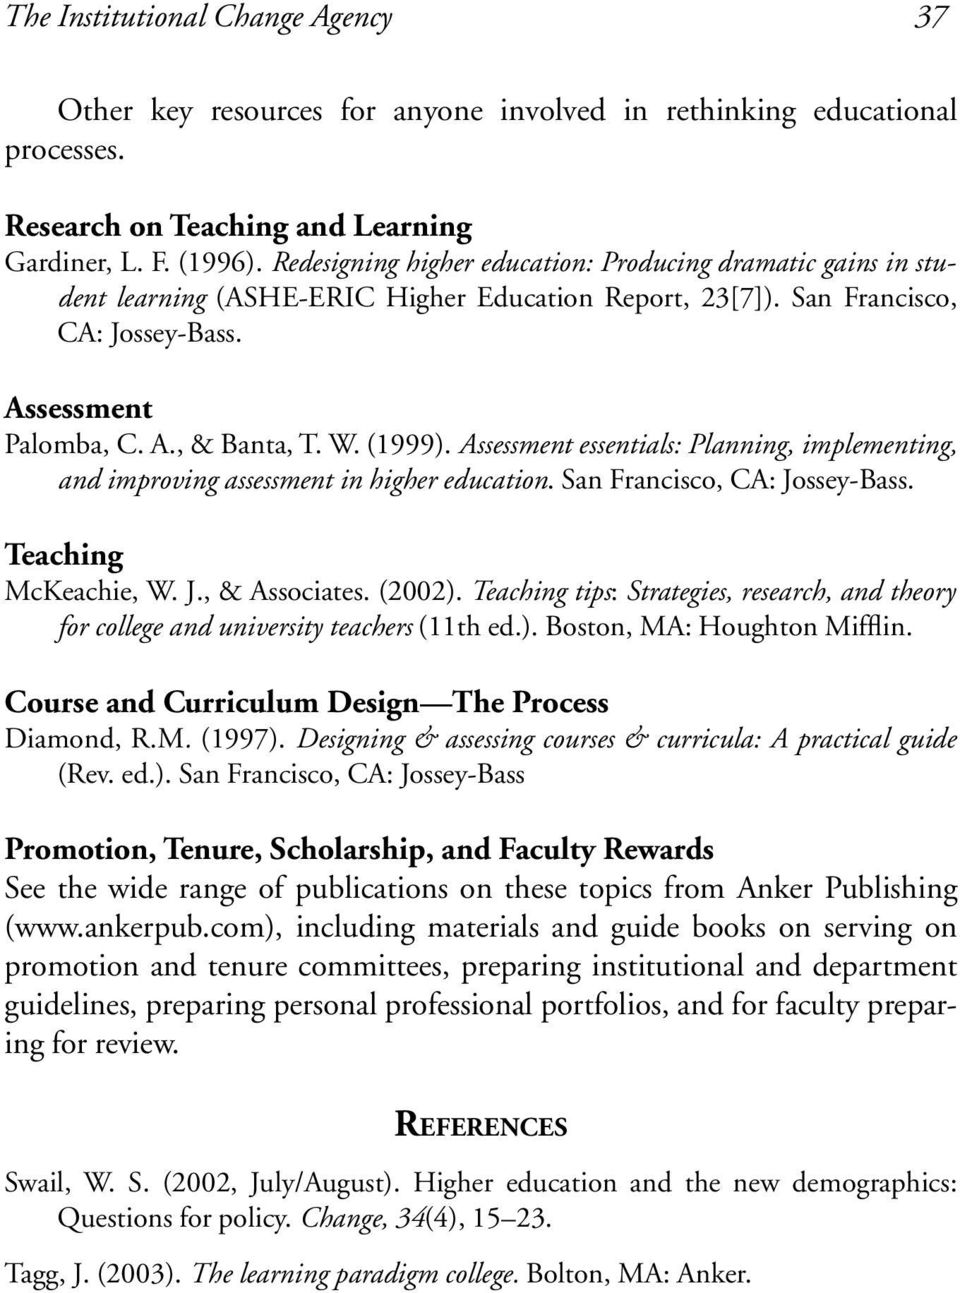 Assessment essentials: Planning, implementing, and improving assessment in higher education. San Francisco, CA: Jossey-Bass. Teaching McKeachie, W. J., & Associates. (2002).